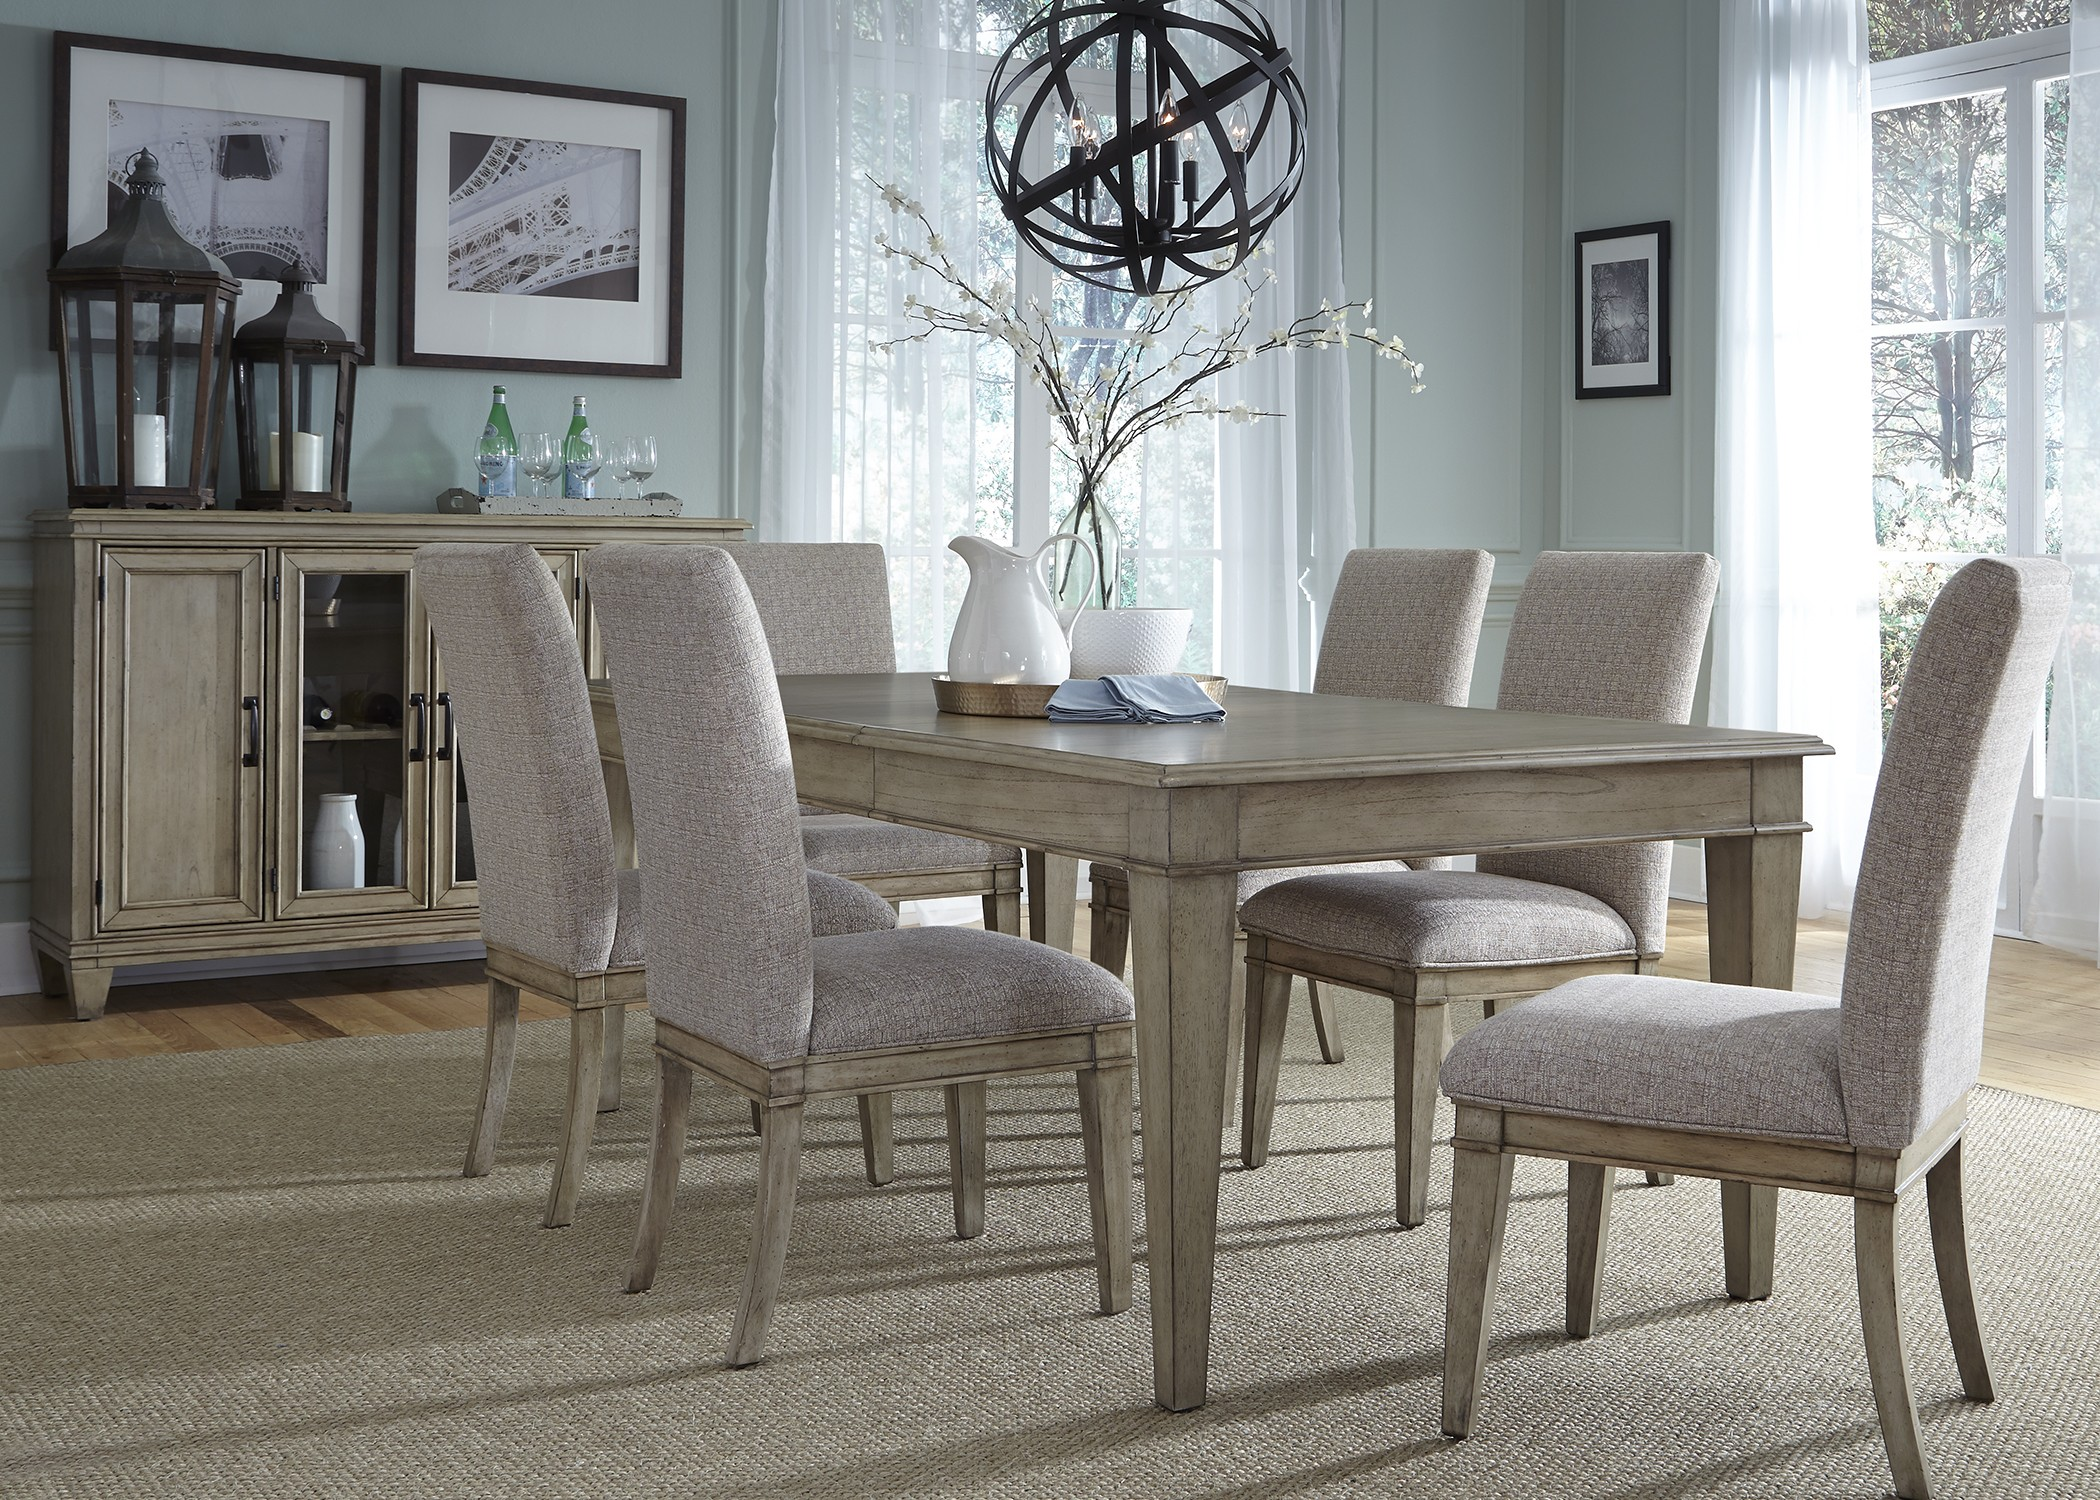 grayton grove extendable dining room set - Extending Dining Table And Chairs